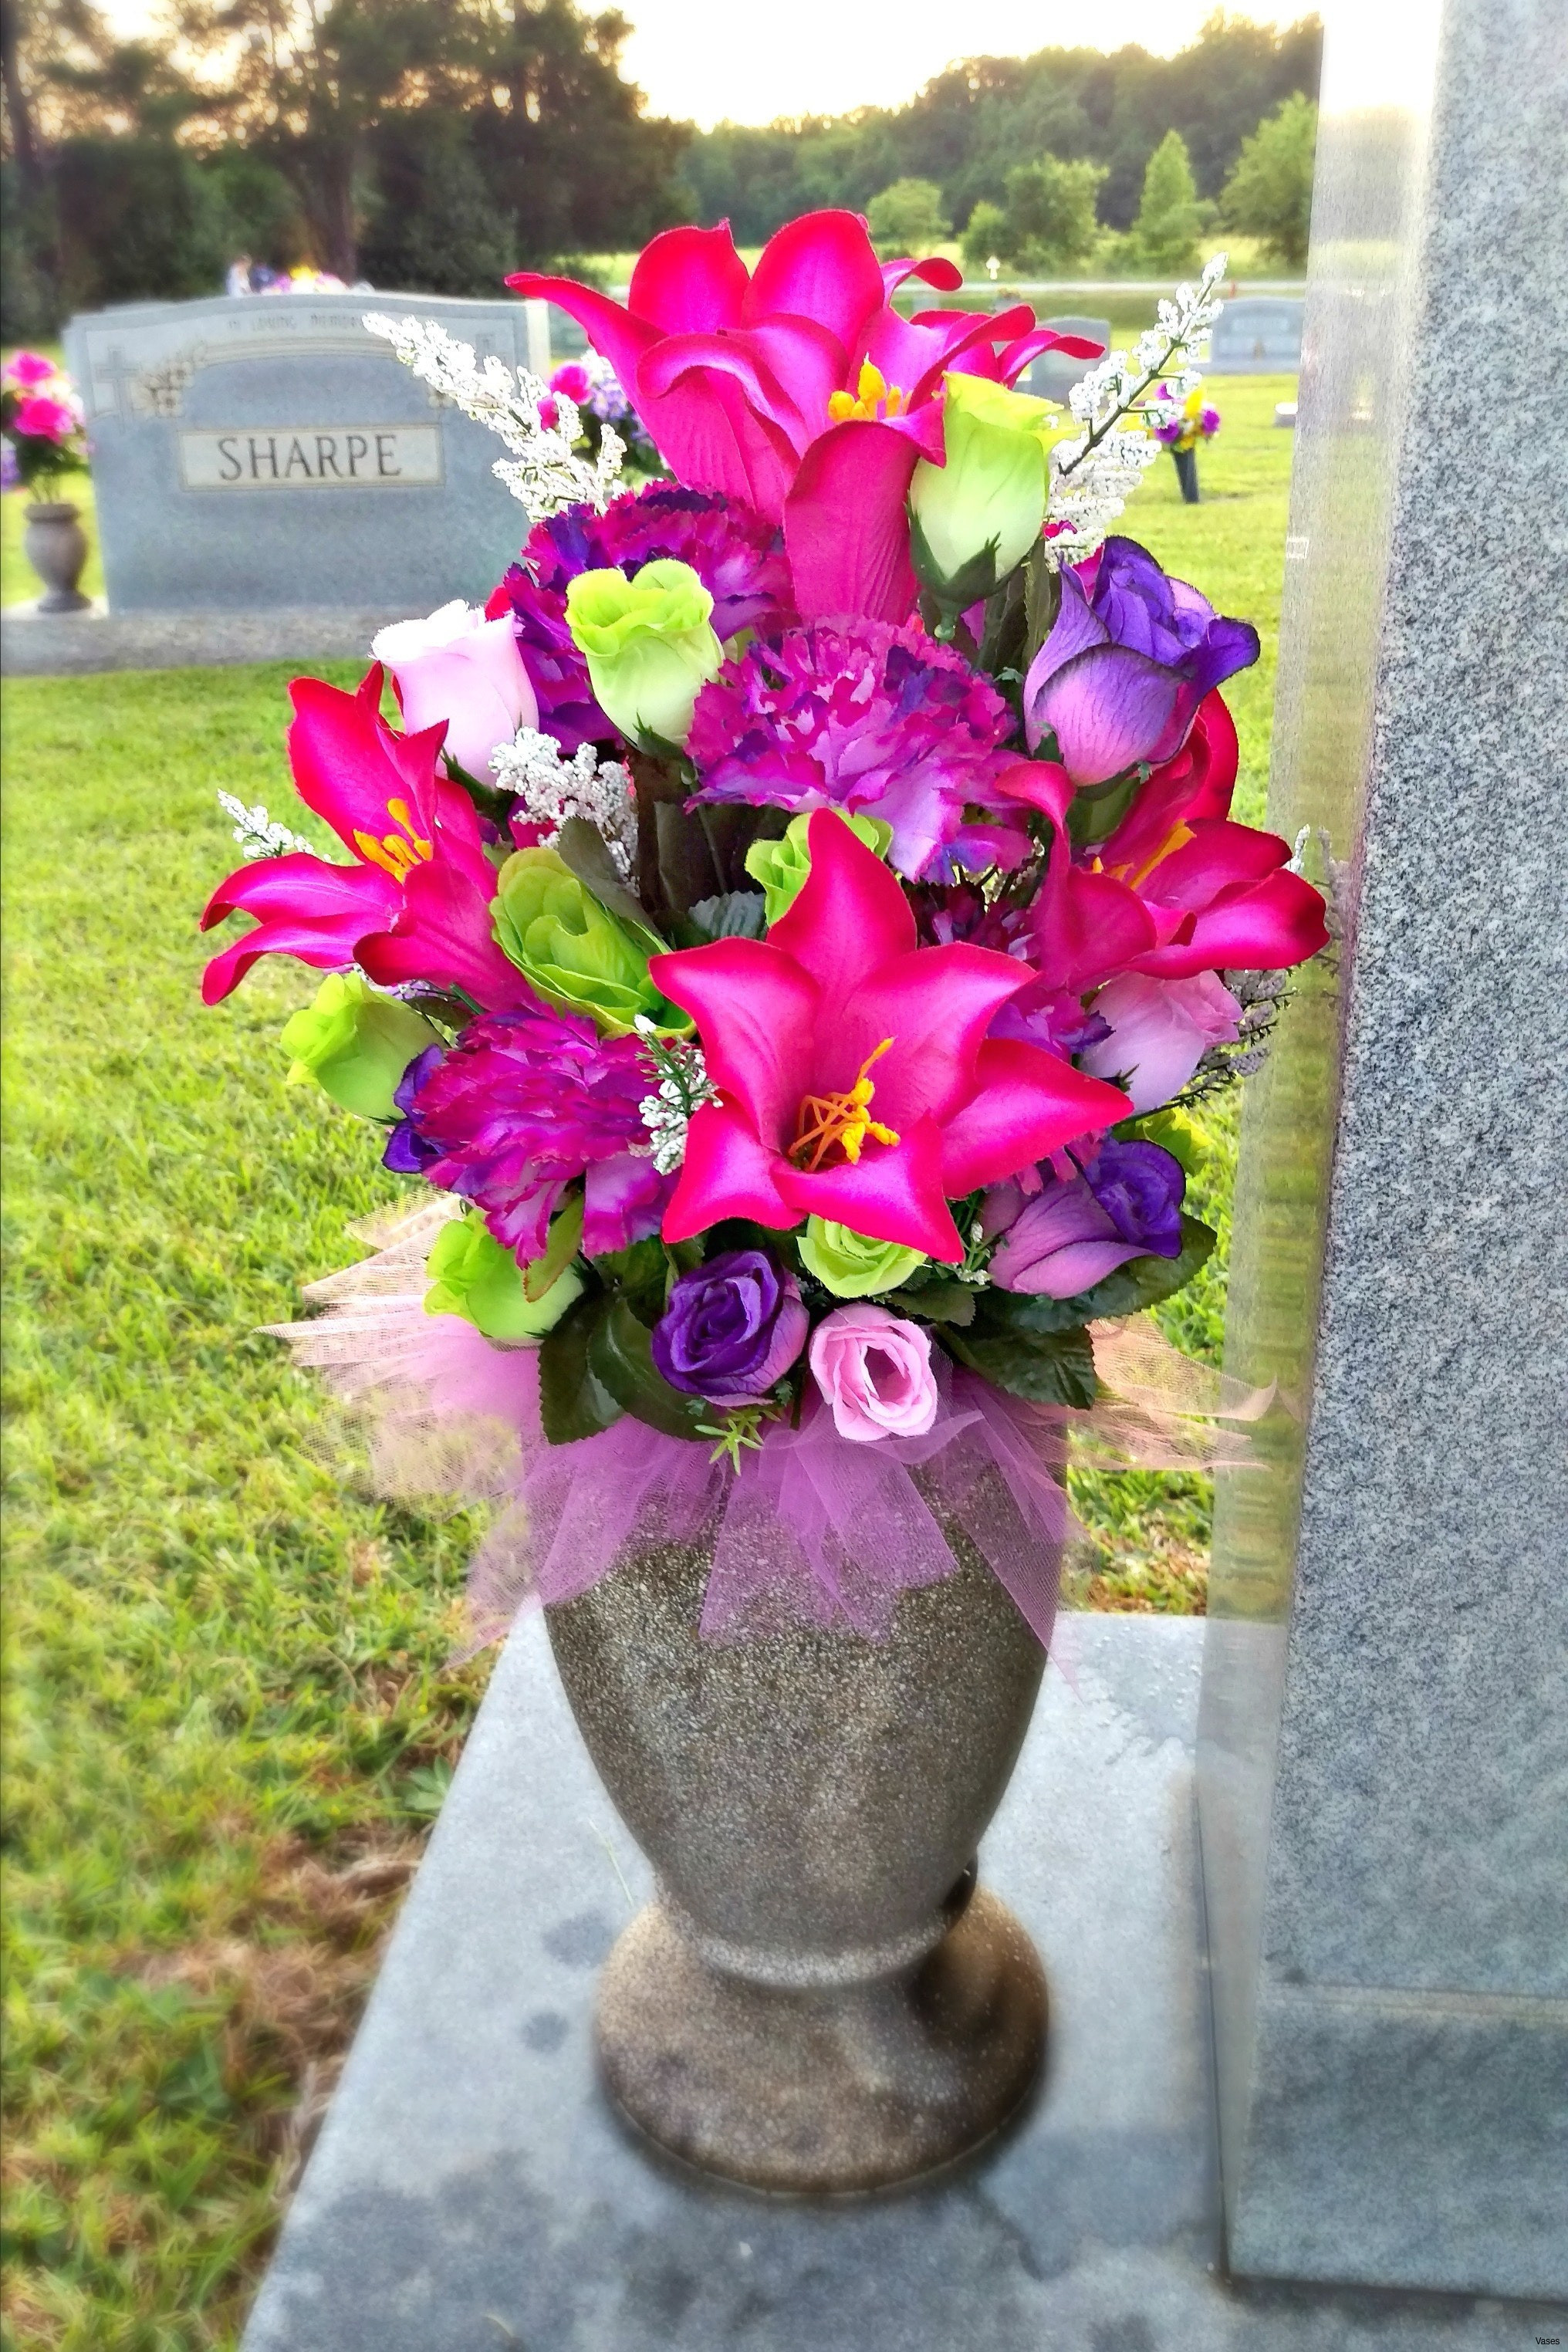 plastic floral vases wholesale of cheap garden pots awesome pot ideas for the garden awesome vases with regard to cheap garden pots elegant vases grave flower vase cemetery informationi 0d in ground holders of cheap